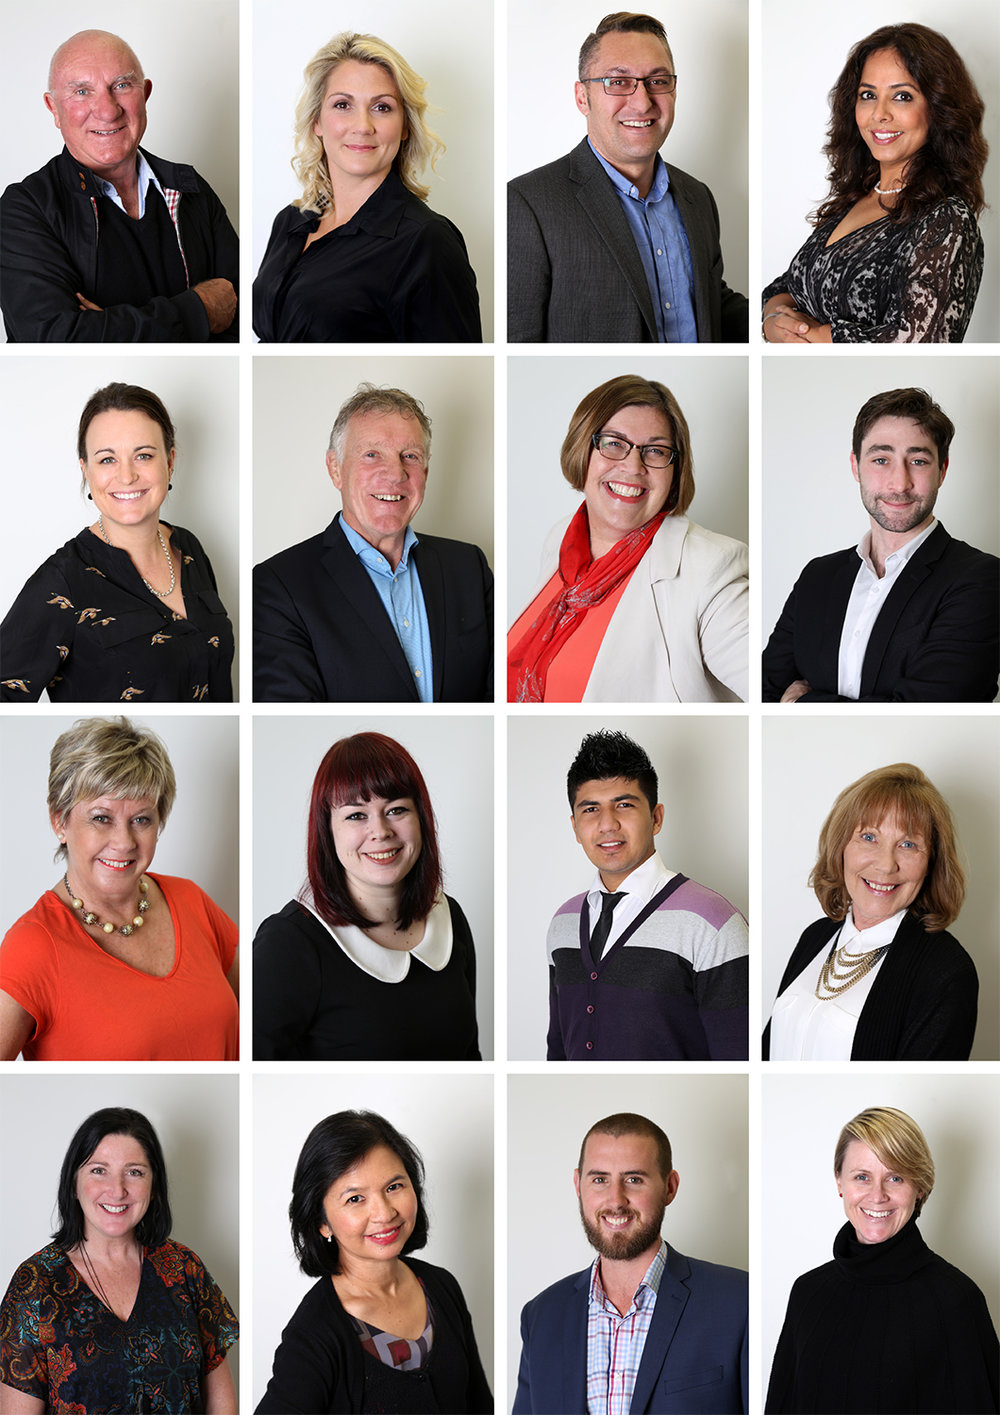 team photos staff photos auckland best photographer profile photos team profile photos staff profile photos awesome team photos auckland staff photos 3.jpg